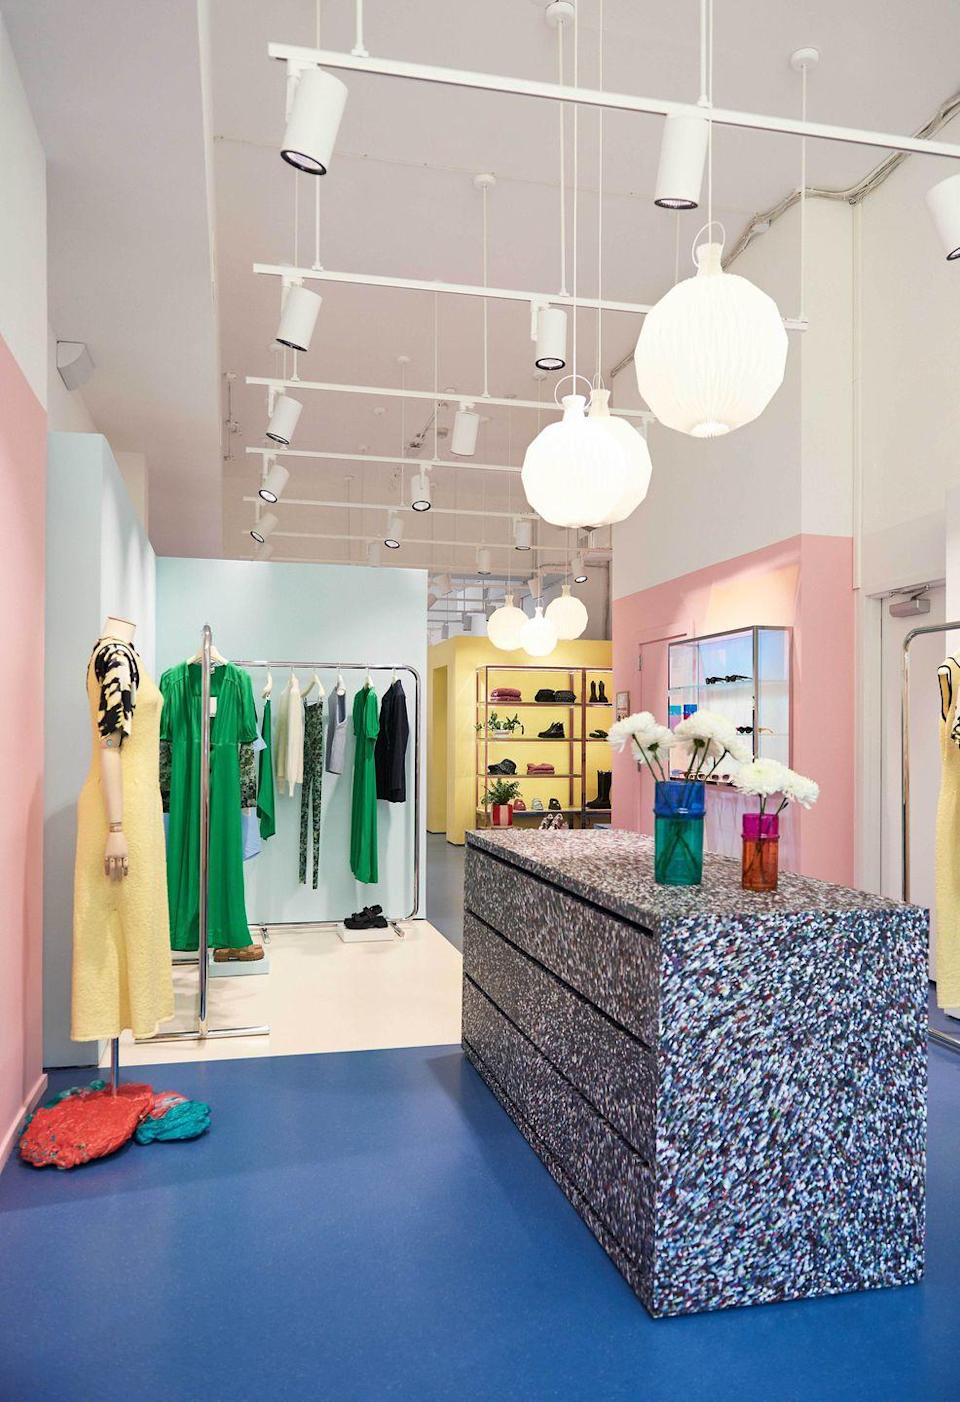 """<p><strong>Who: </strong>Ganni</p><p><strong>What: </strong>Williamsburg store opening</p><p><strong>Where:</strong> 113 N. 7th Street, Brooklyn, NY </p><p><strong>Why: </strong>Danish clothing brand and purveyor of Scandi-chic wares Ganni is putting down roots in Brooklyn's Williamsburg neighborhood, marking its second store in New York and sixth in the US. The store takes design cues from the SoHo location, featuring primary colors with artfully merchandised ready-to-wear and accessories; upcycled and recycled furniture is also showcased throughout. To properly honor the new space, Ganni tapped Brooklyn-based artist Didi Rojas to create both a mural and a sculpture of Ganni's popular lug sole boots. Get into the Danish groove with a brand that's bringing a slice of Copenhagen stateside, emphasizing casual and feminine silhouettes while also acknowledging its environmental and social responsibility.</p><p><a class=""""link rapid-noclick-resp"""" href=""""https://go.redirectingat.com?id=74968X1596630&url=https%3A%2F%2Fwww.ganni.com%2Fus%2Fstores-find&sref=https%3A%2F%2Fwww.elle.com%2Ffashion%2Fshopping%2Fg36905733%2Fthe-launch-julys-hottest-fashion-drops%2F"""" rel=""""nofollow noopener"""" target=""""_blank"""" data-ylk=""""slk:VIEW MORE"""">VIEW MORE</a><br></p>"""